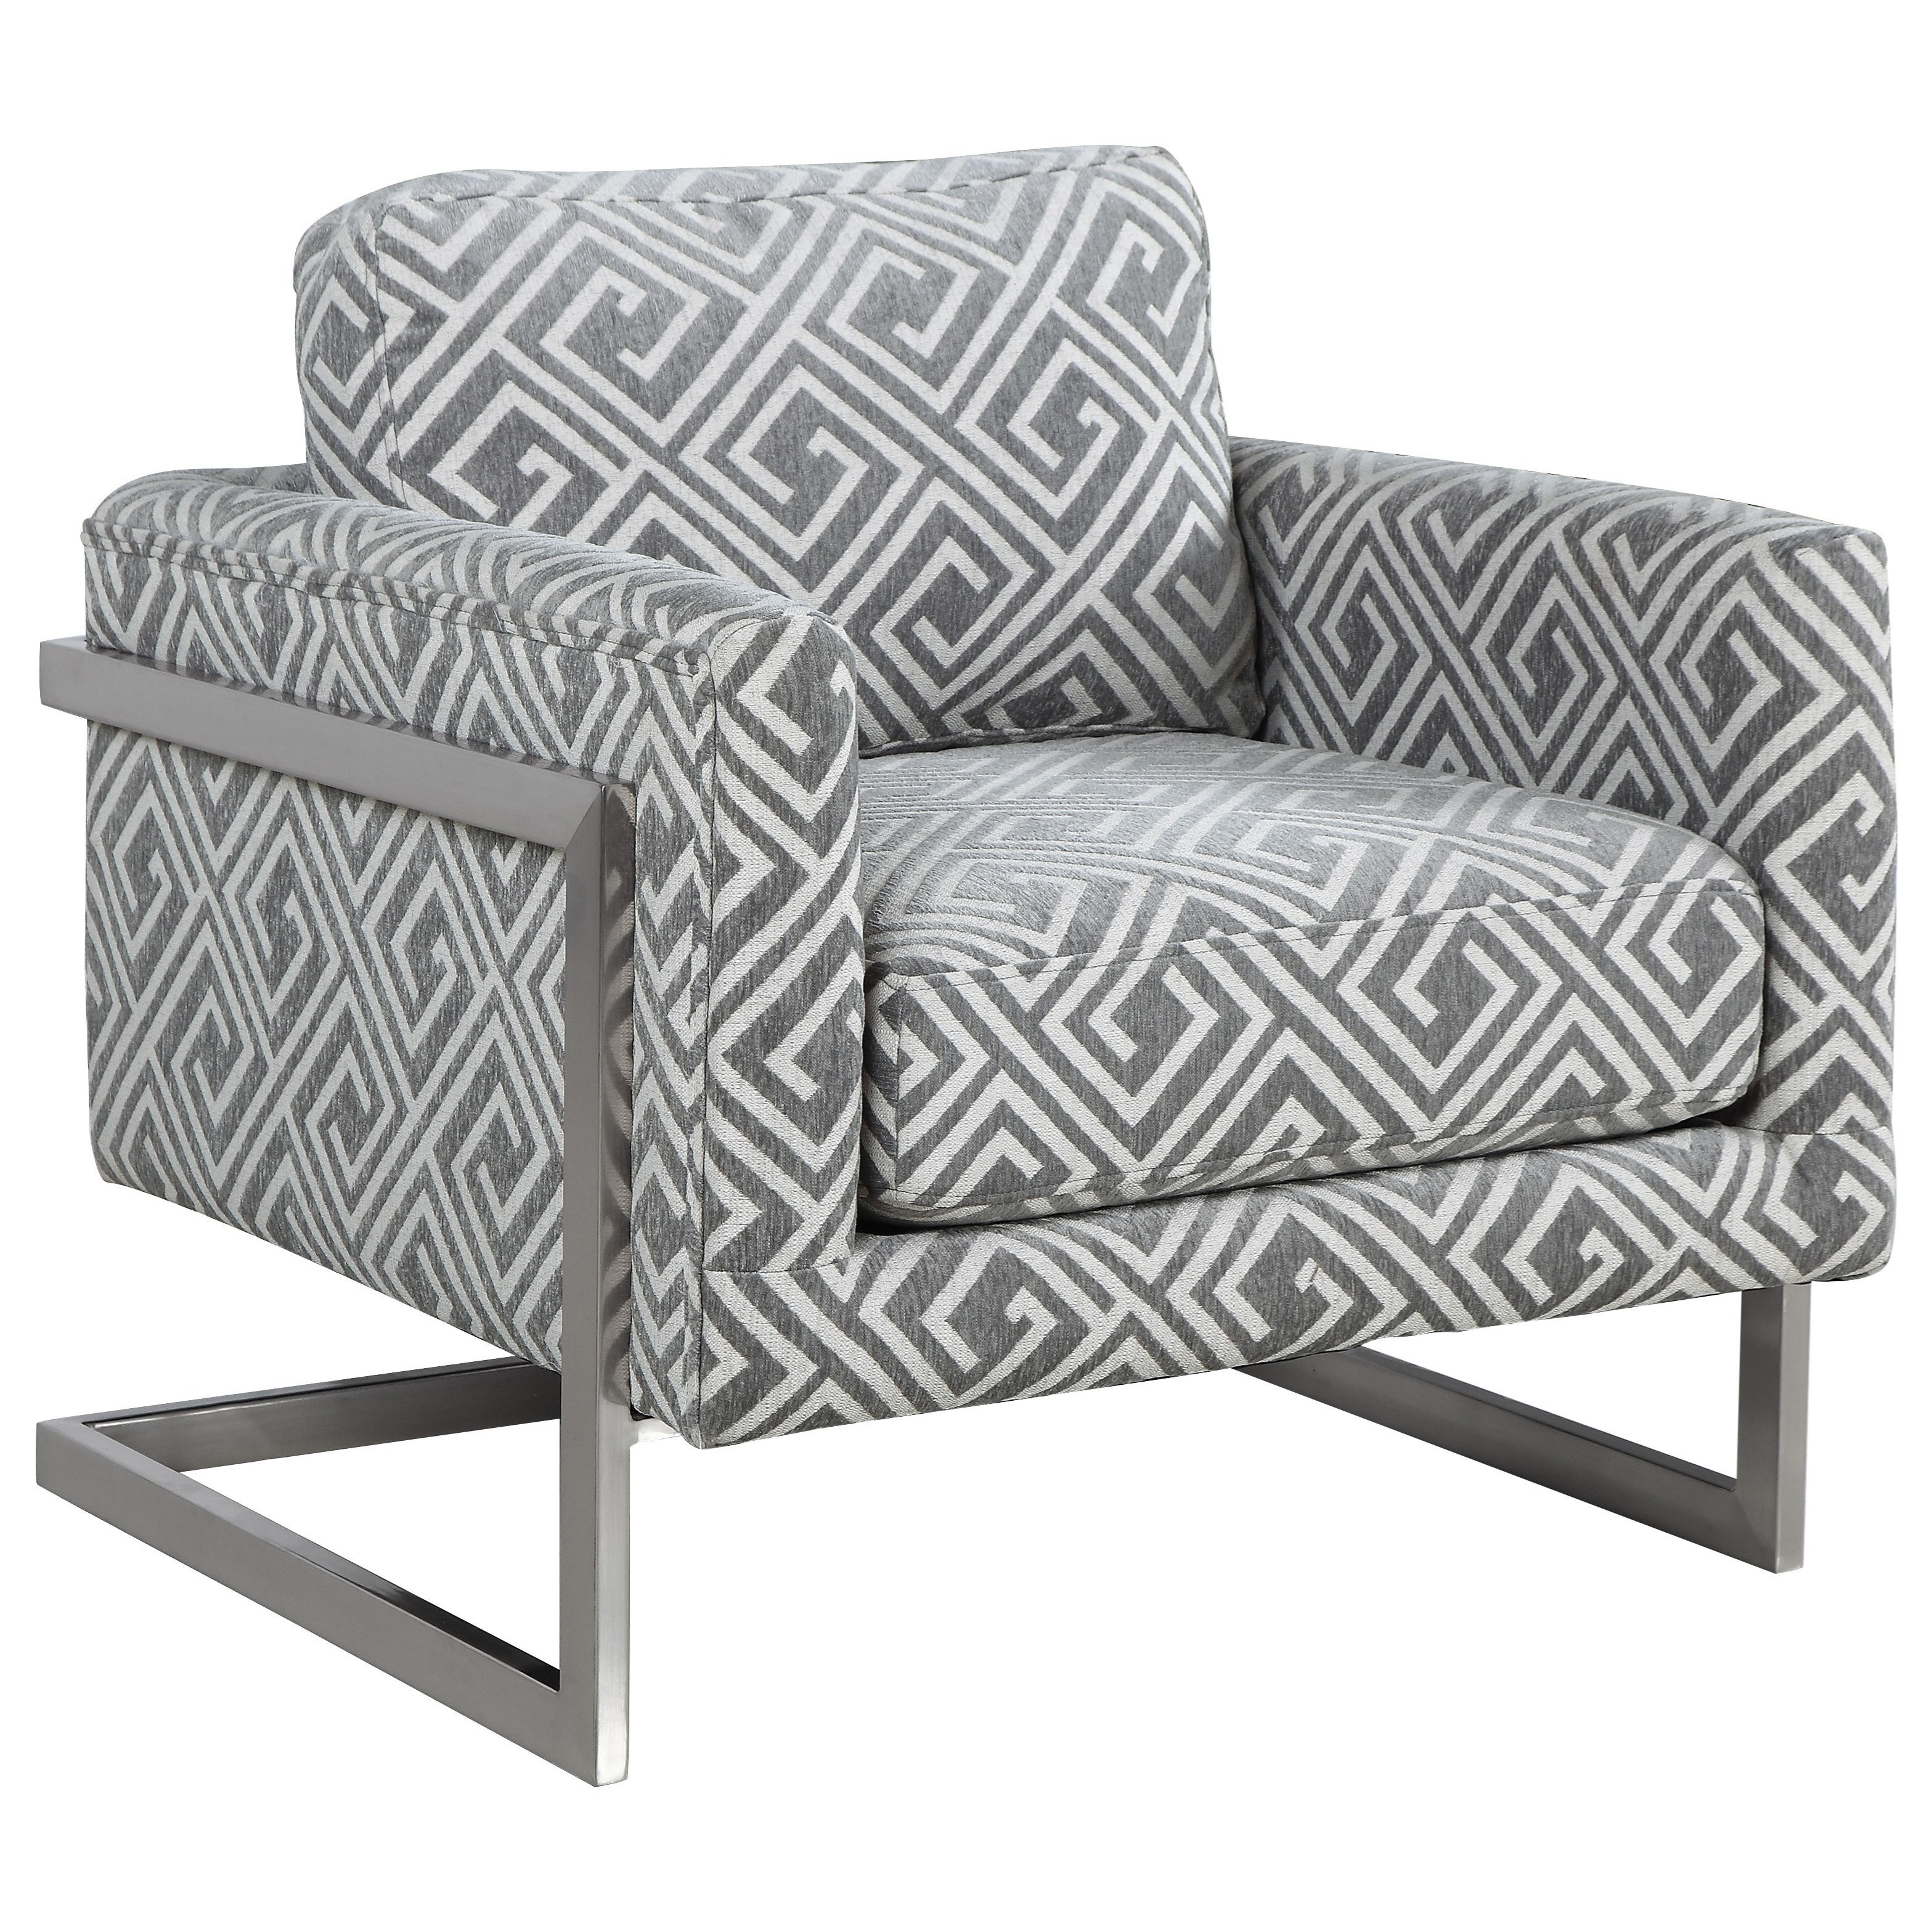 Donny Osmond Home Accent Seating Accent Chair - Item Number: 902786